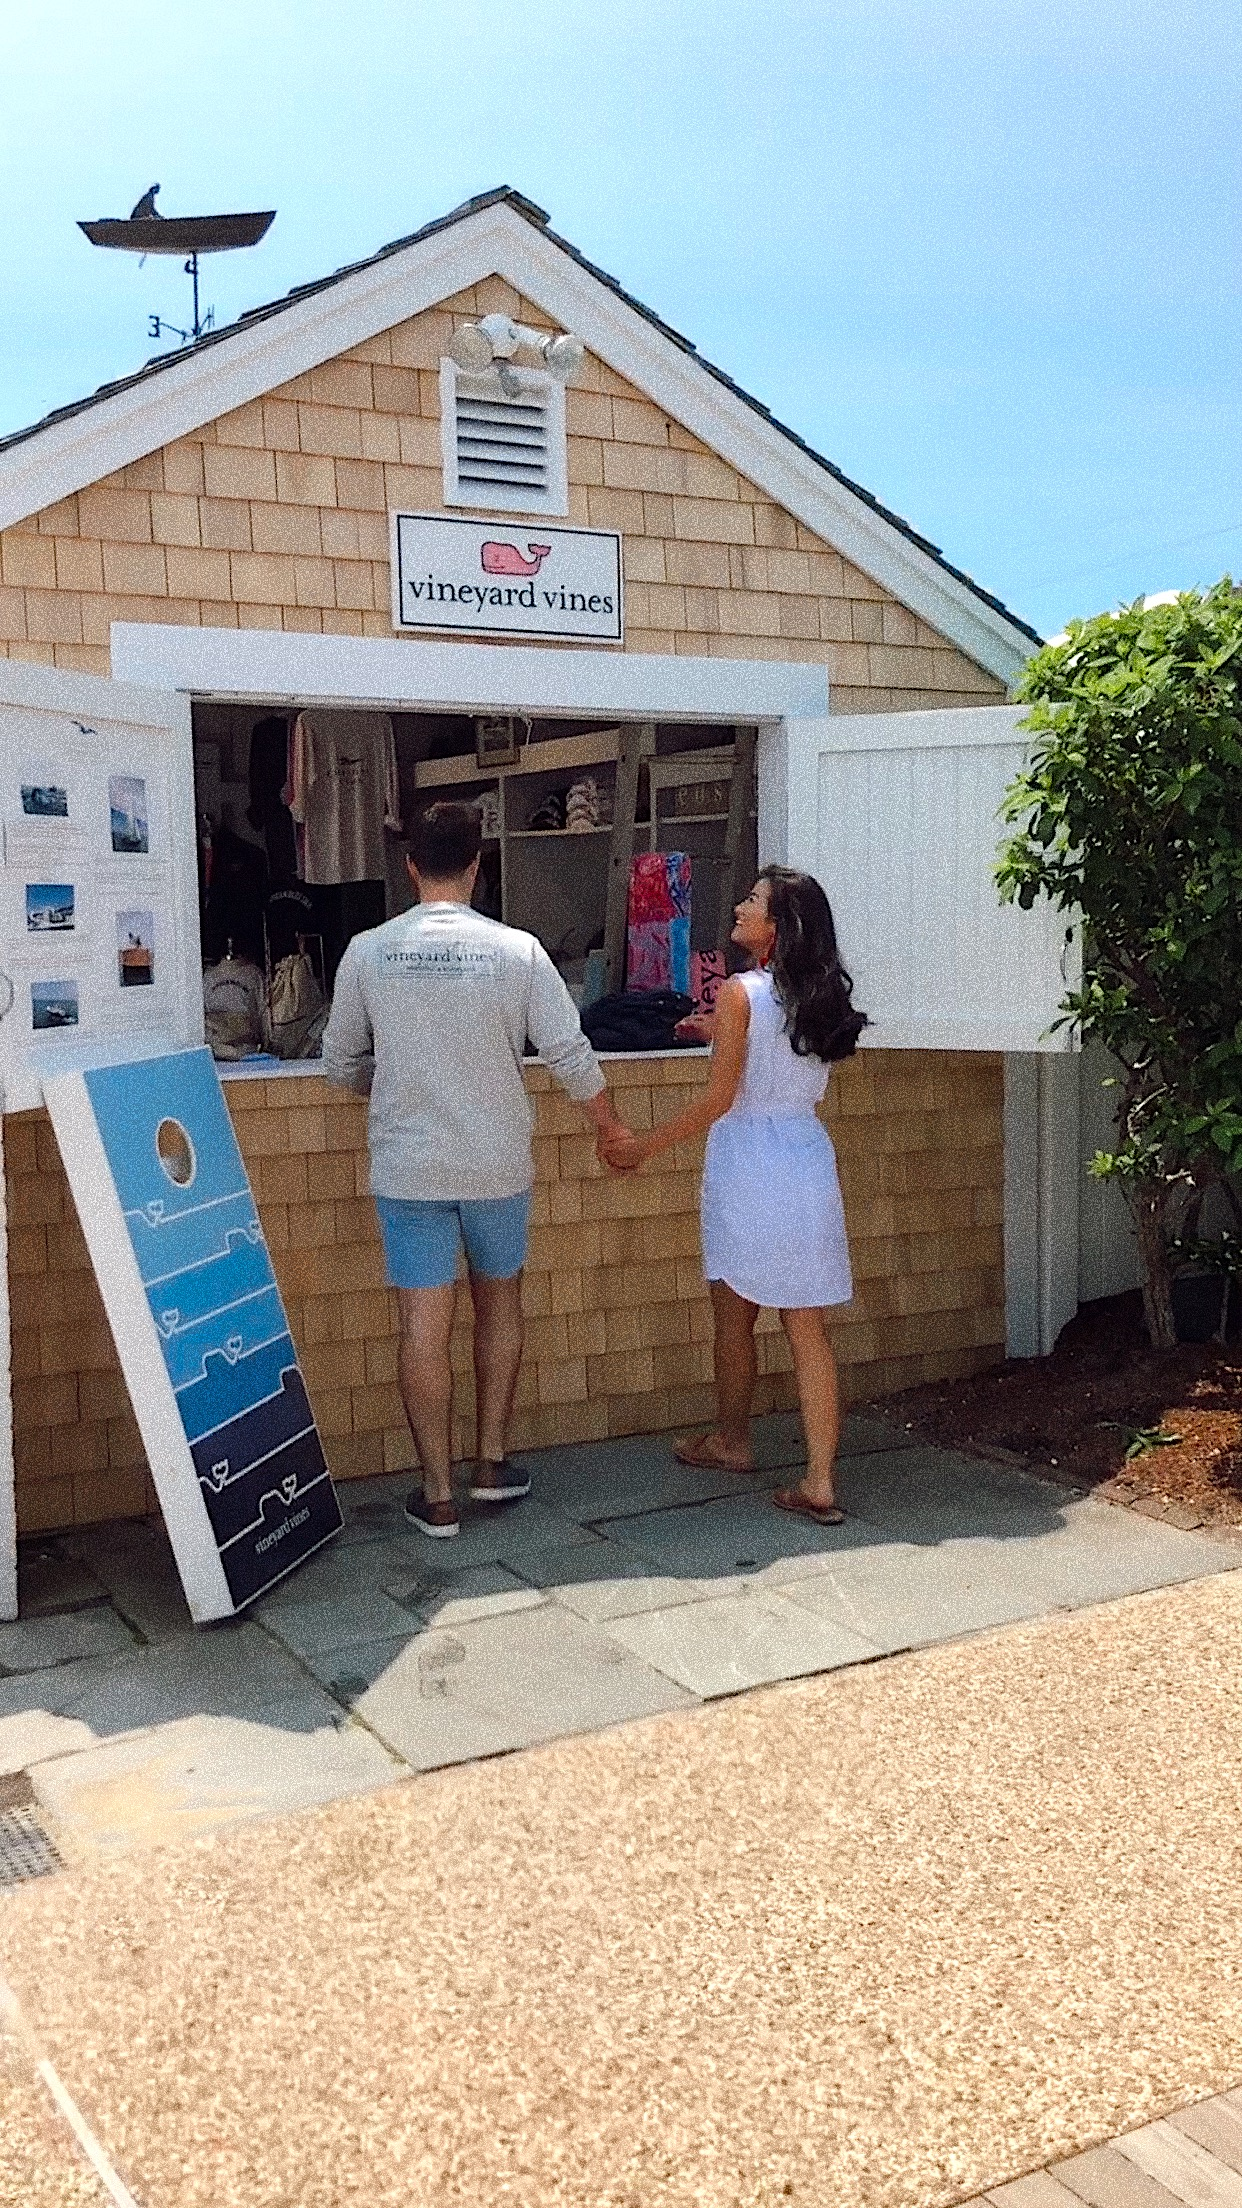 VINEYARD VINES TRAVEL GUIDE: A DREAM COUPLES WEEKEND IN CAPE